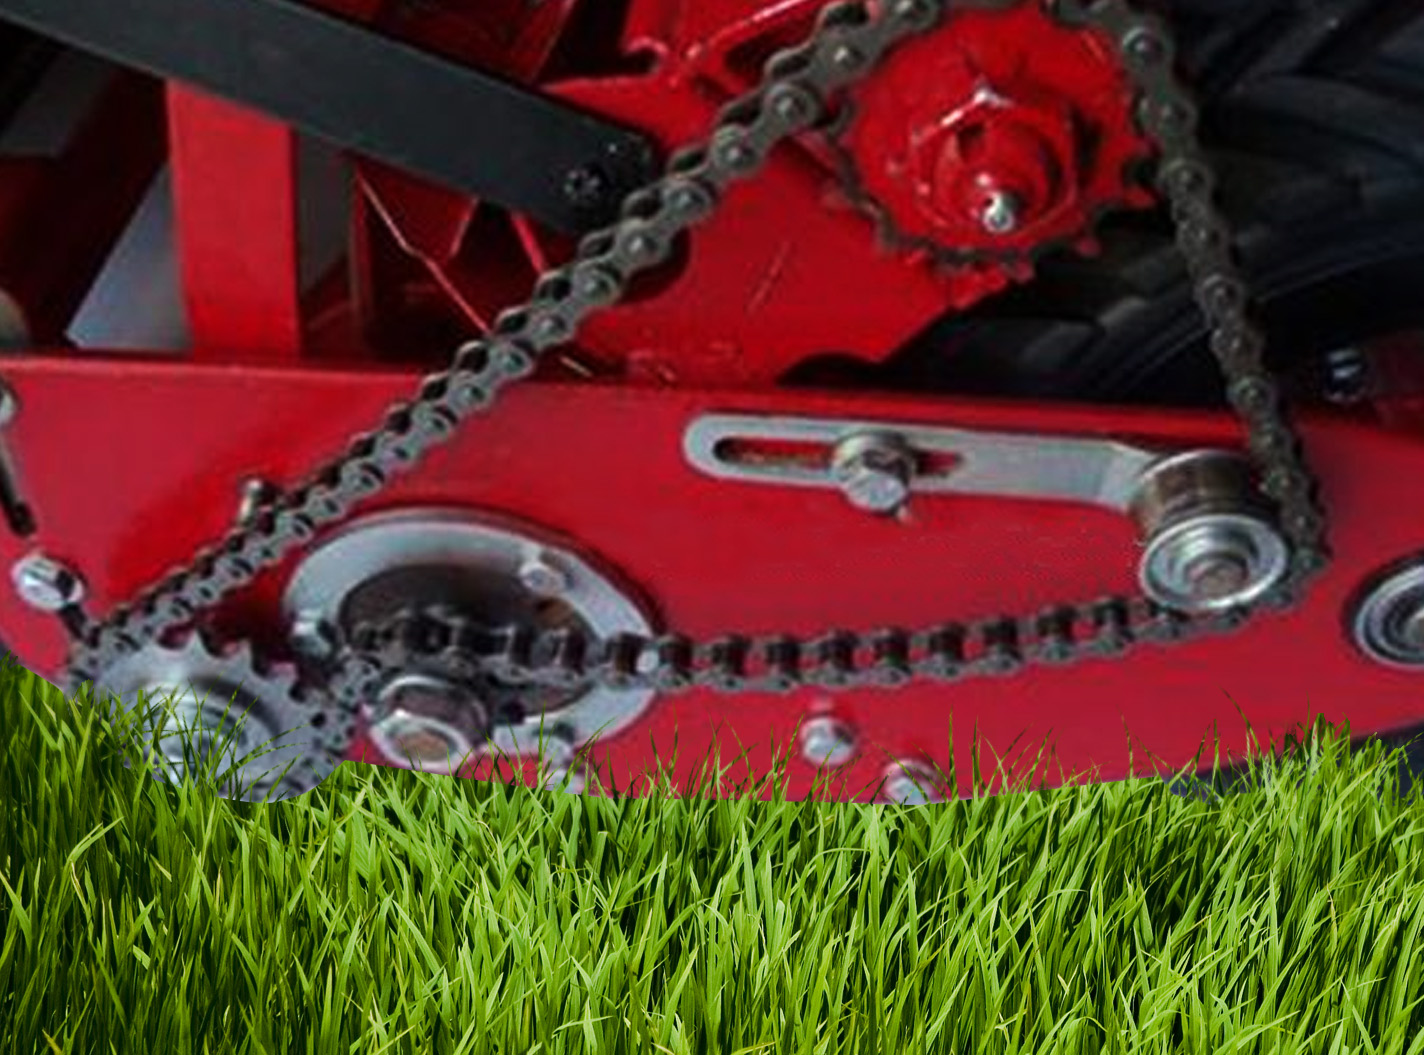 Tru Cut : Lawn Mowers Parts and Service, YOUR POWER